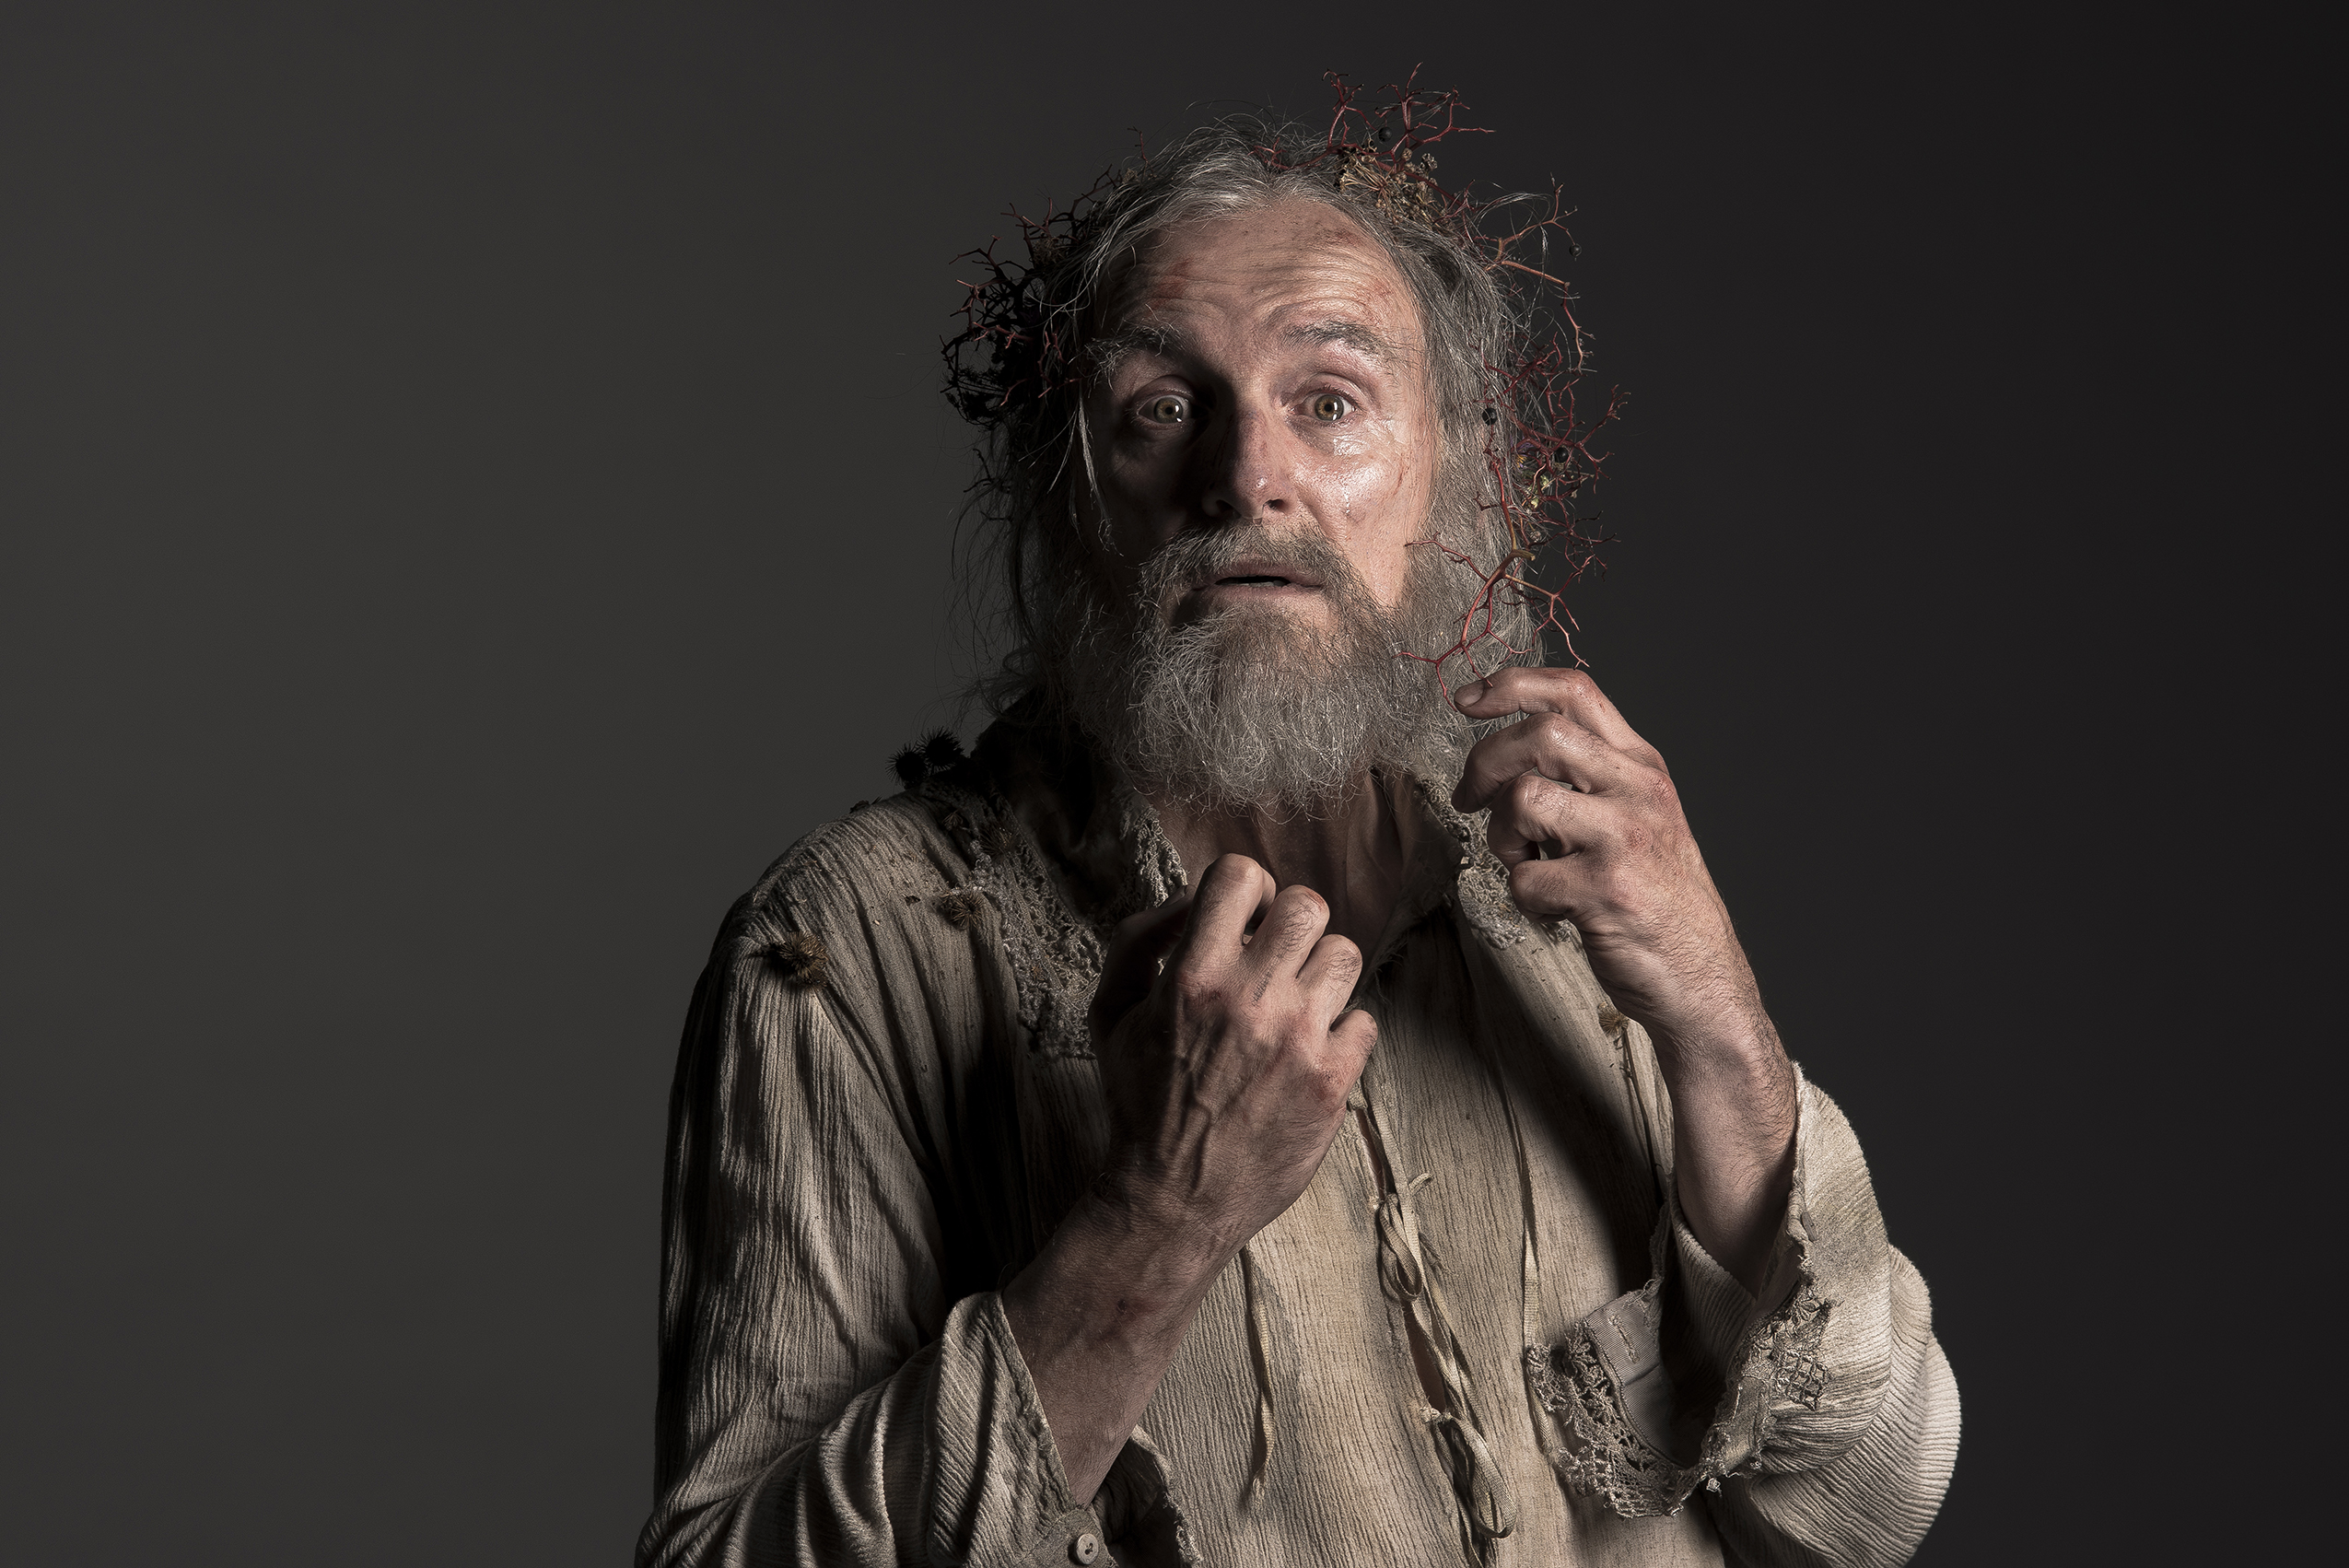 madness of lear edgar King lear is a tragedy written by  which provided some of the language used by edgar while he feigns madness [citation needed] king lear is also a literary .